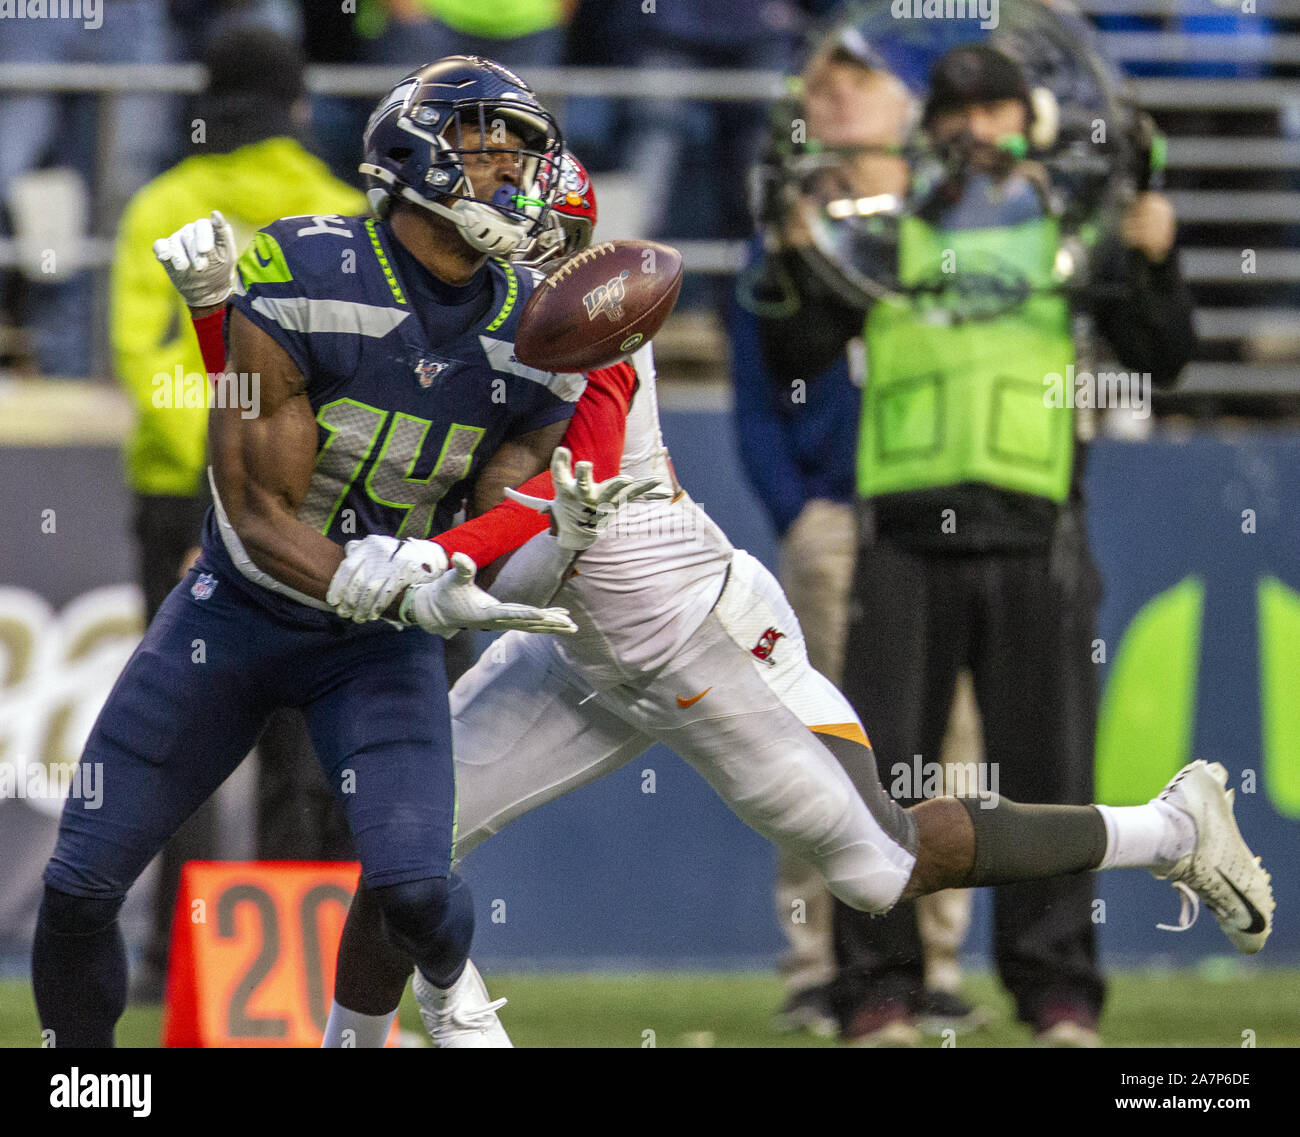 Seattle, United States. 03rd Nov, 2019. Seattle Seahawks wide receiver D.K. Metcalf (14) is interfered from catch a pass by Tampa Bay Buccaneers defensive back Jamel Dean (35) during overtime at CenturyLink Field on Sunday, November 3, 2019 in Seattle, Washington. The Seahawks beat the Buccaneers 40-34 in overtime. Jim Bryant Photo/UPI Credit: UPI/Alamy Live News Stock Photo